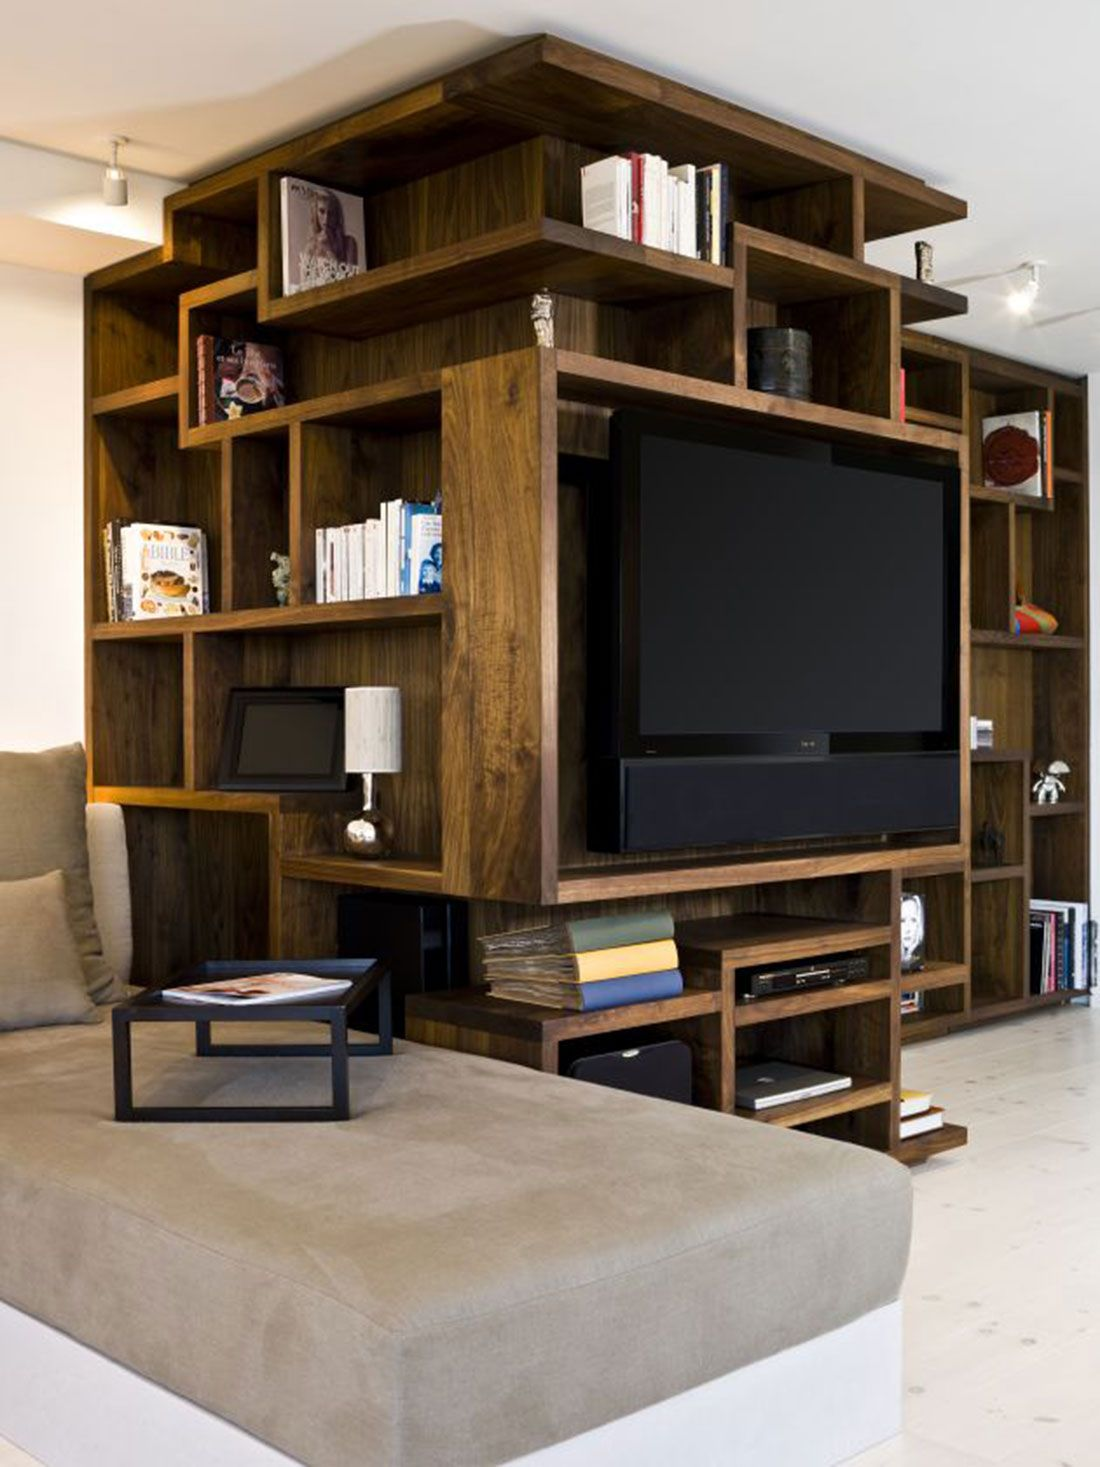 bookshelf design ideas on pinterest bookshelf design creative